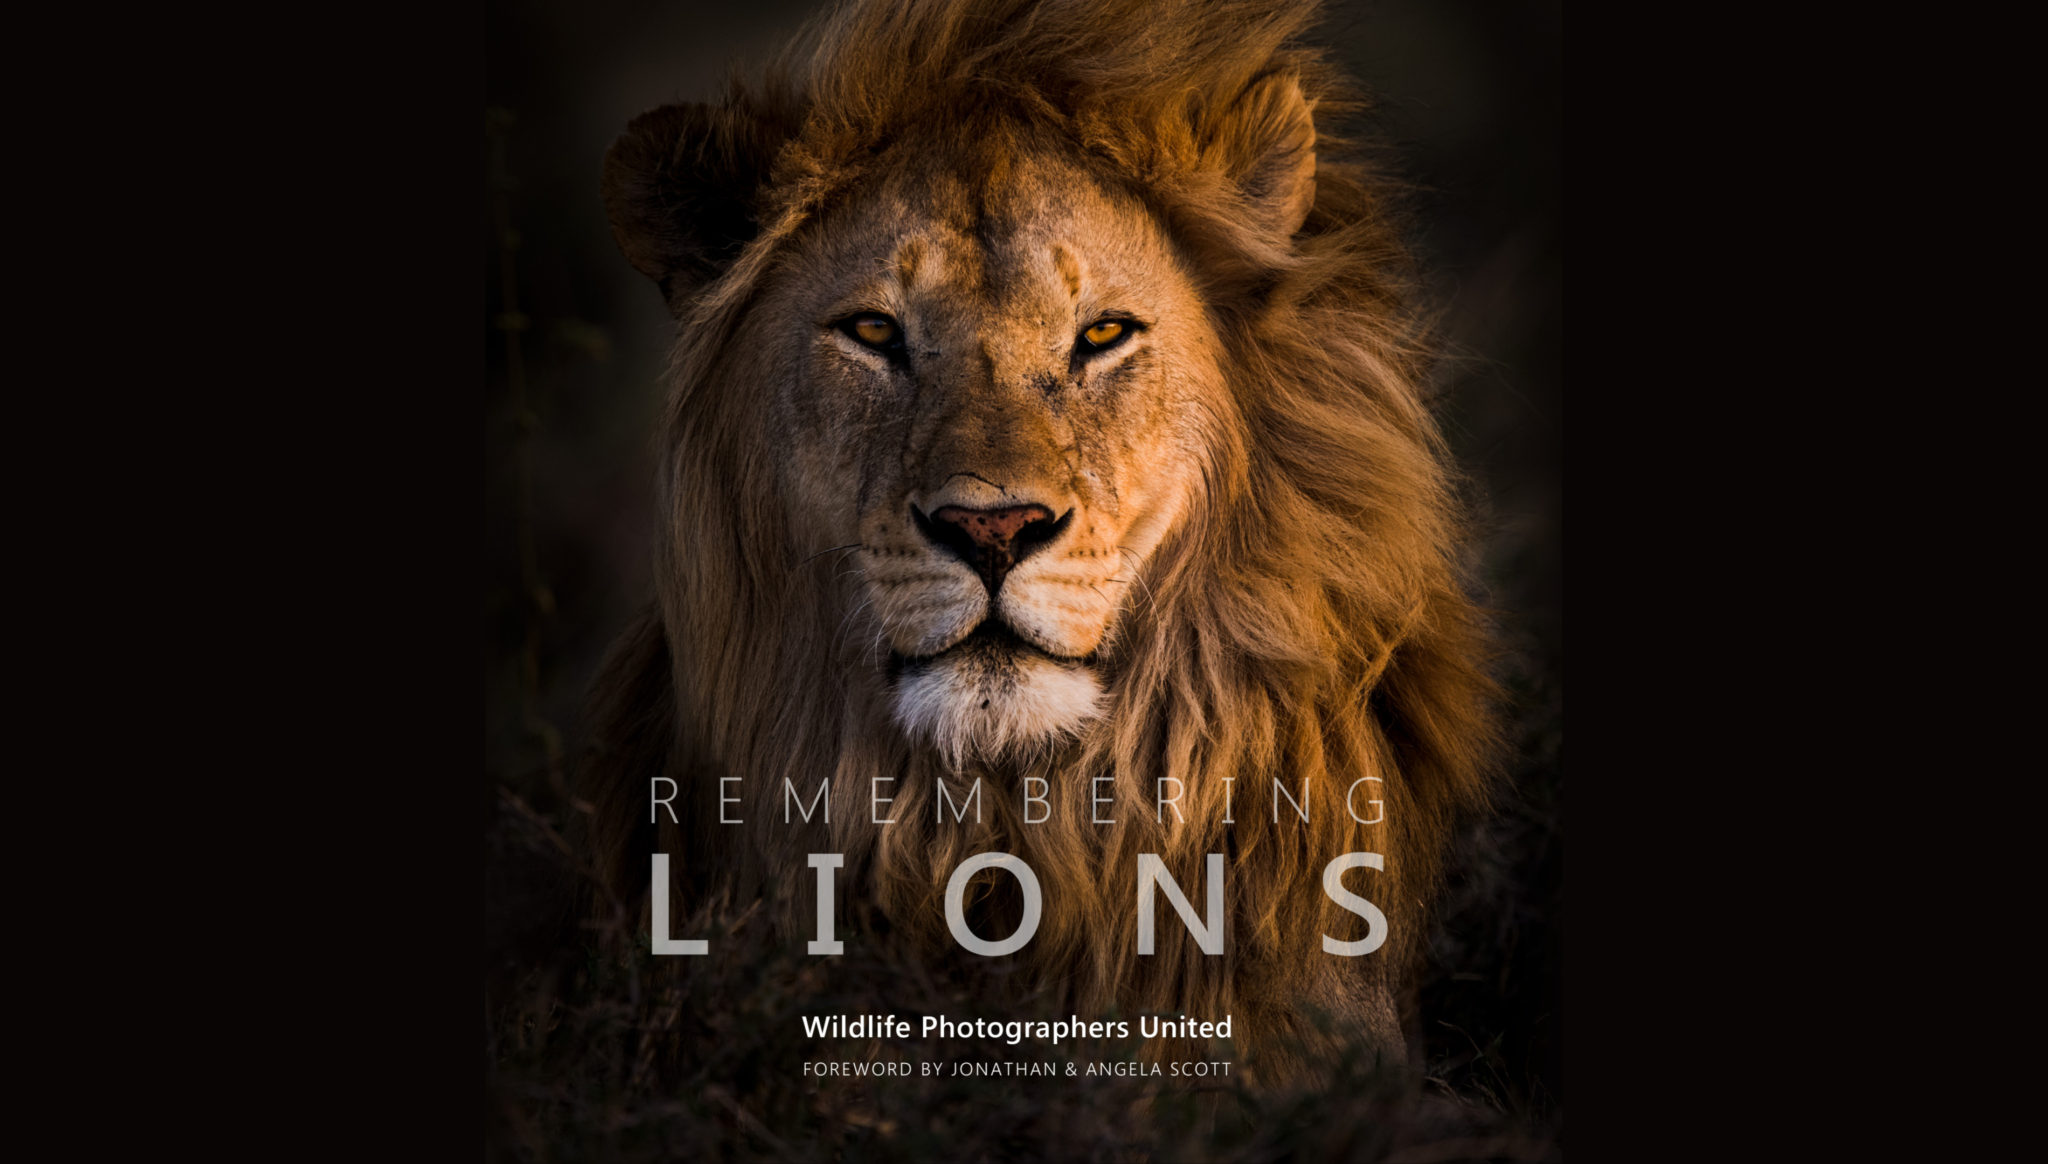 Remembering Lions charity book for conservation. | Mar Gone Wild